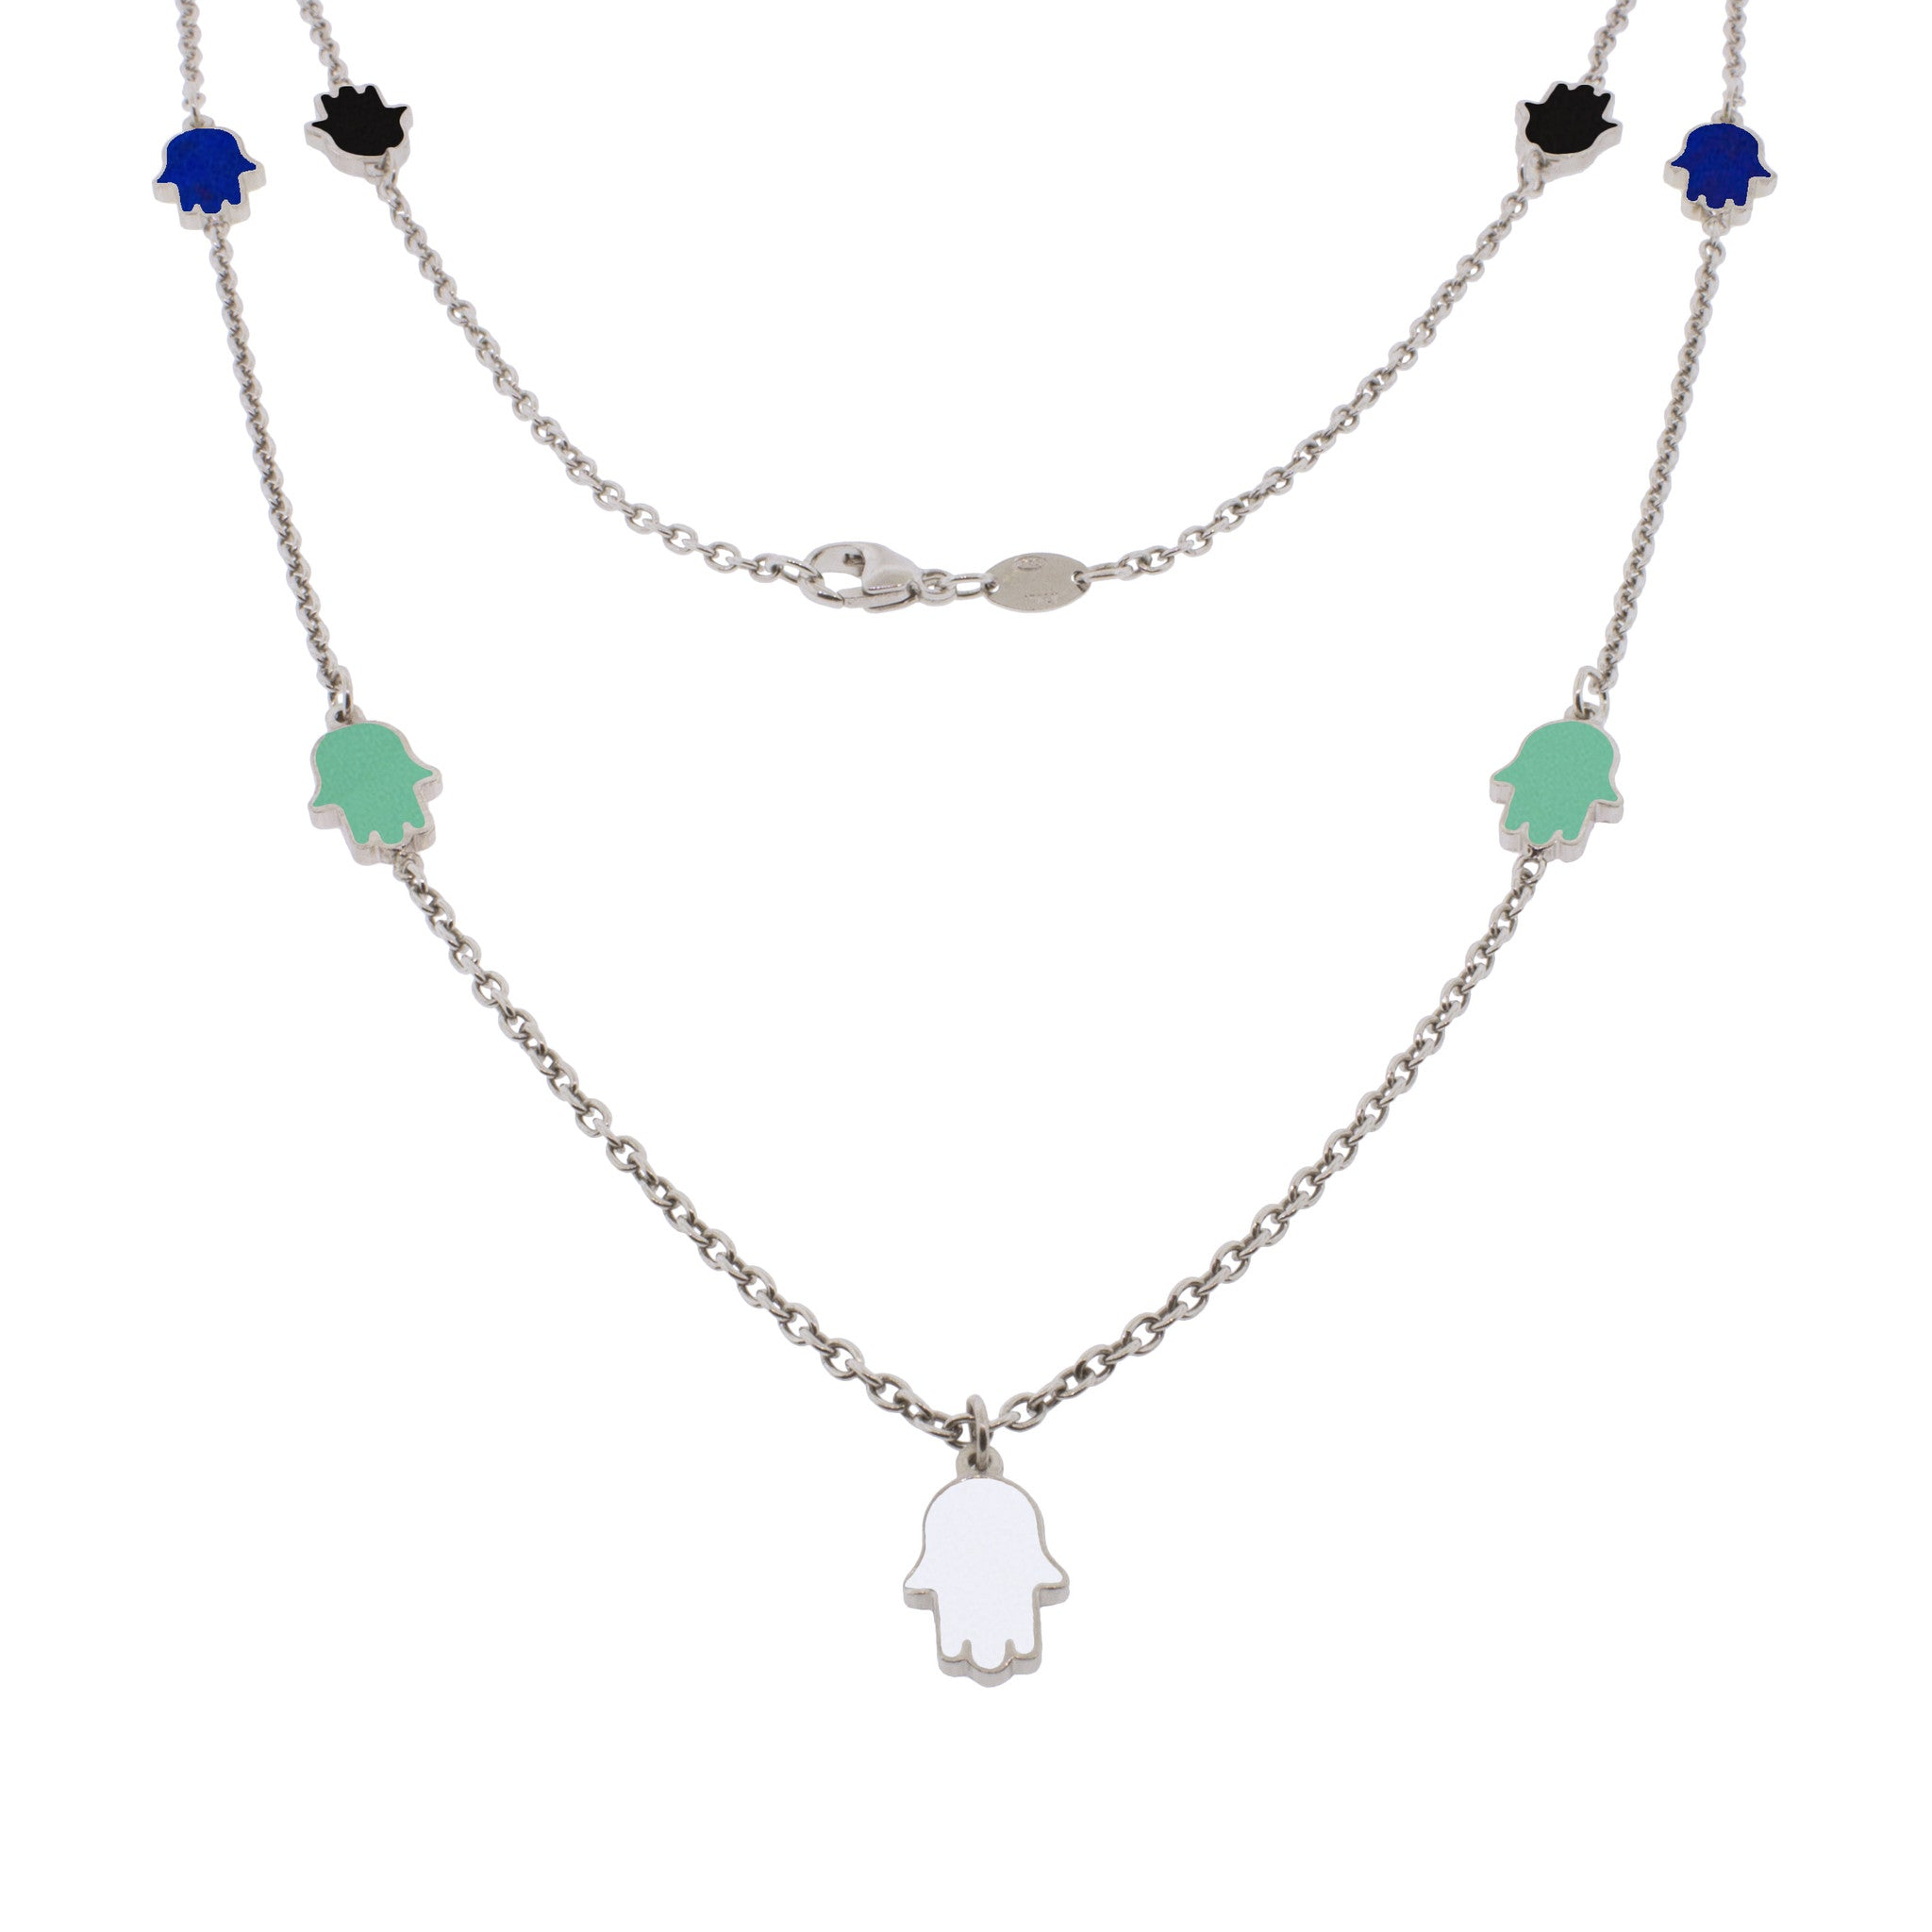 24-inch Touch of Luck Sterling Silver Necklace - Color Splash